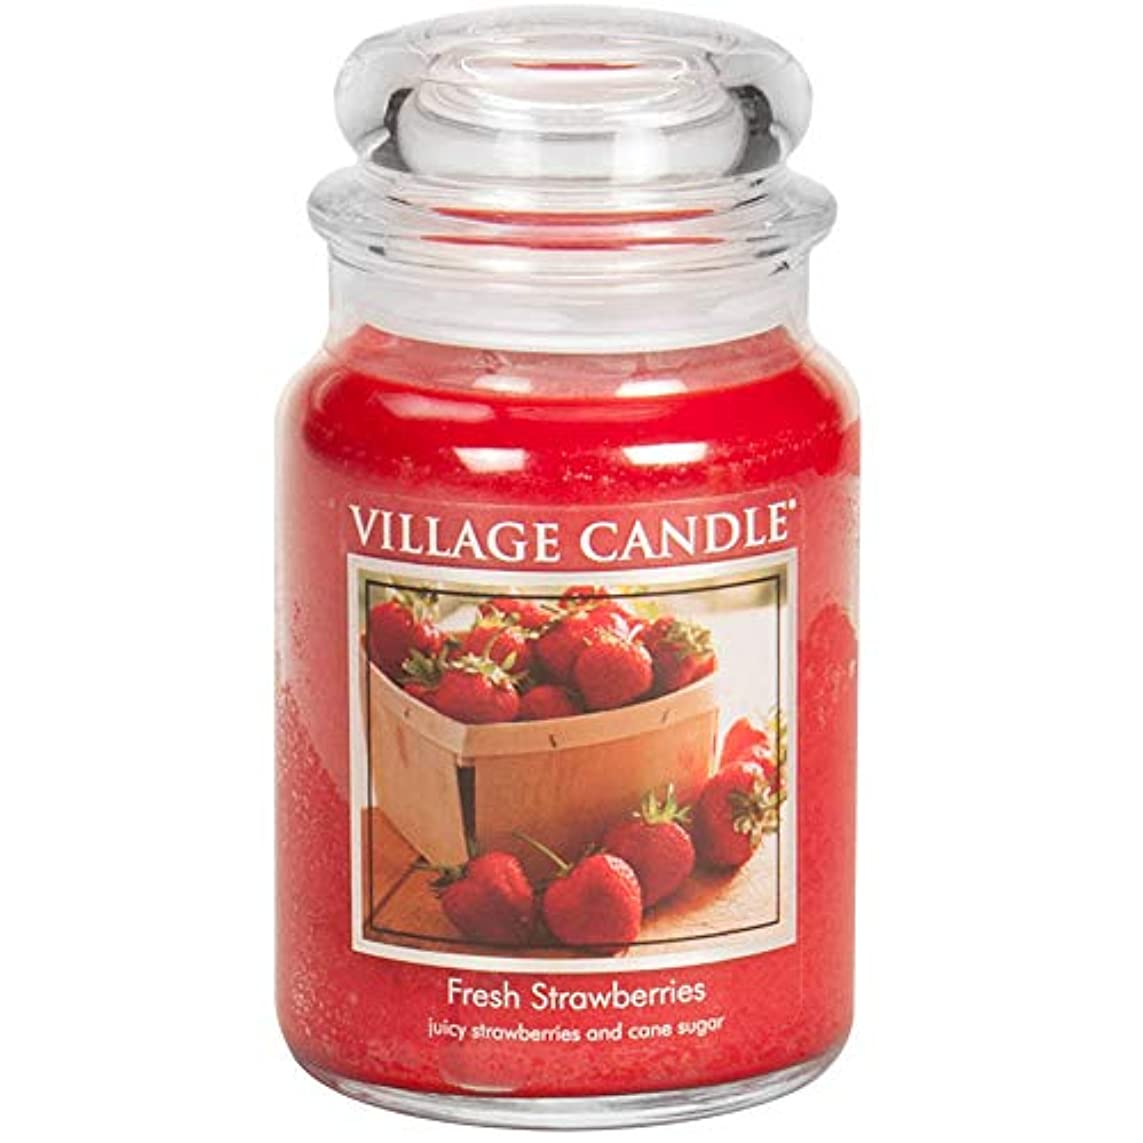 遠近法精巧な触手Village Candle Large Fragranced Candle Jar - 17cm x 10cm - 26oz (1219g)- Fresh Strawberries - upto 170 hours burn...